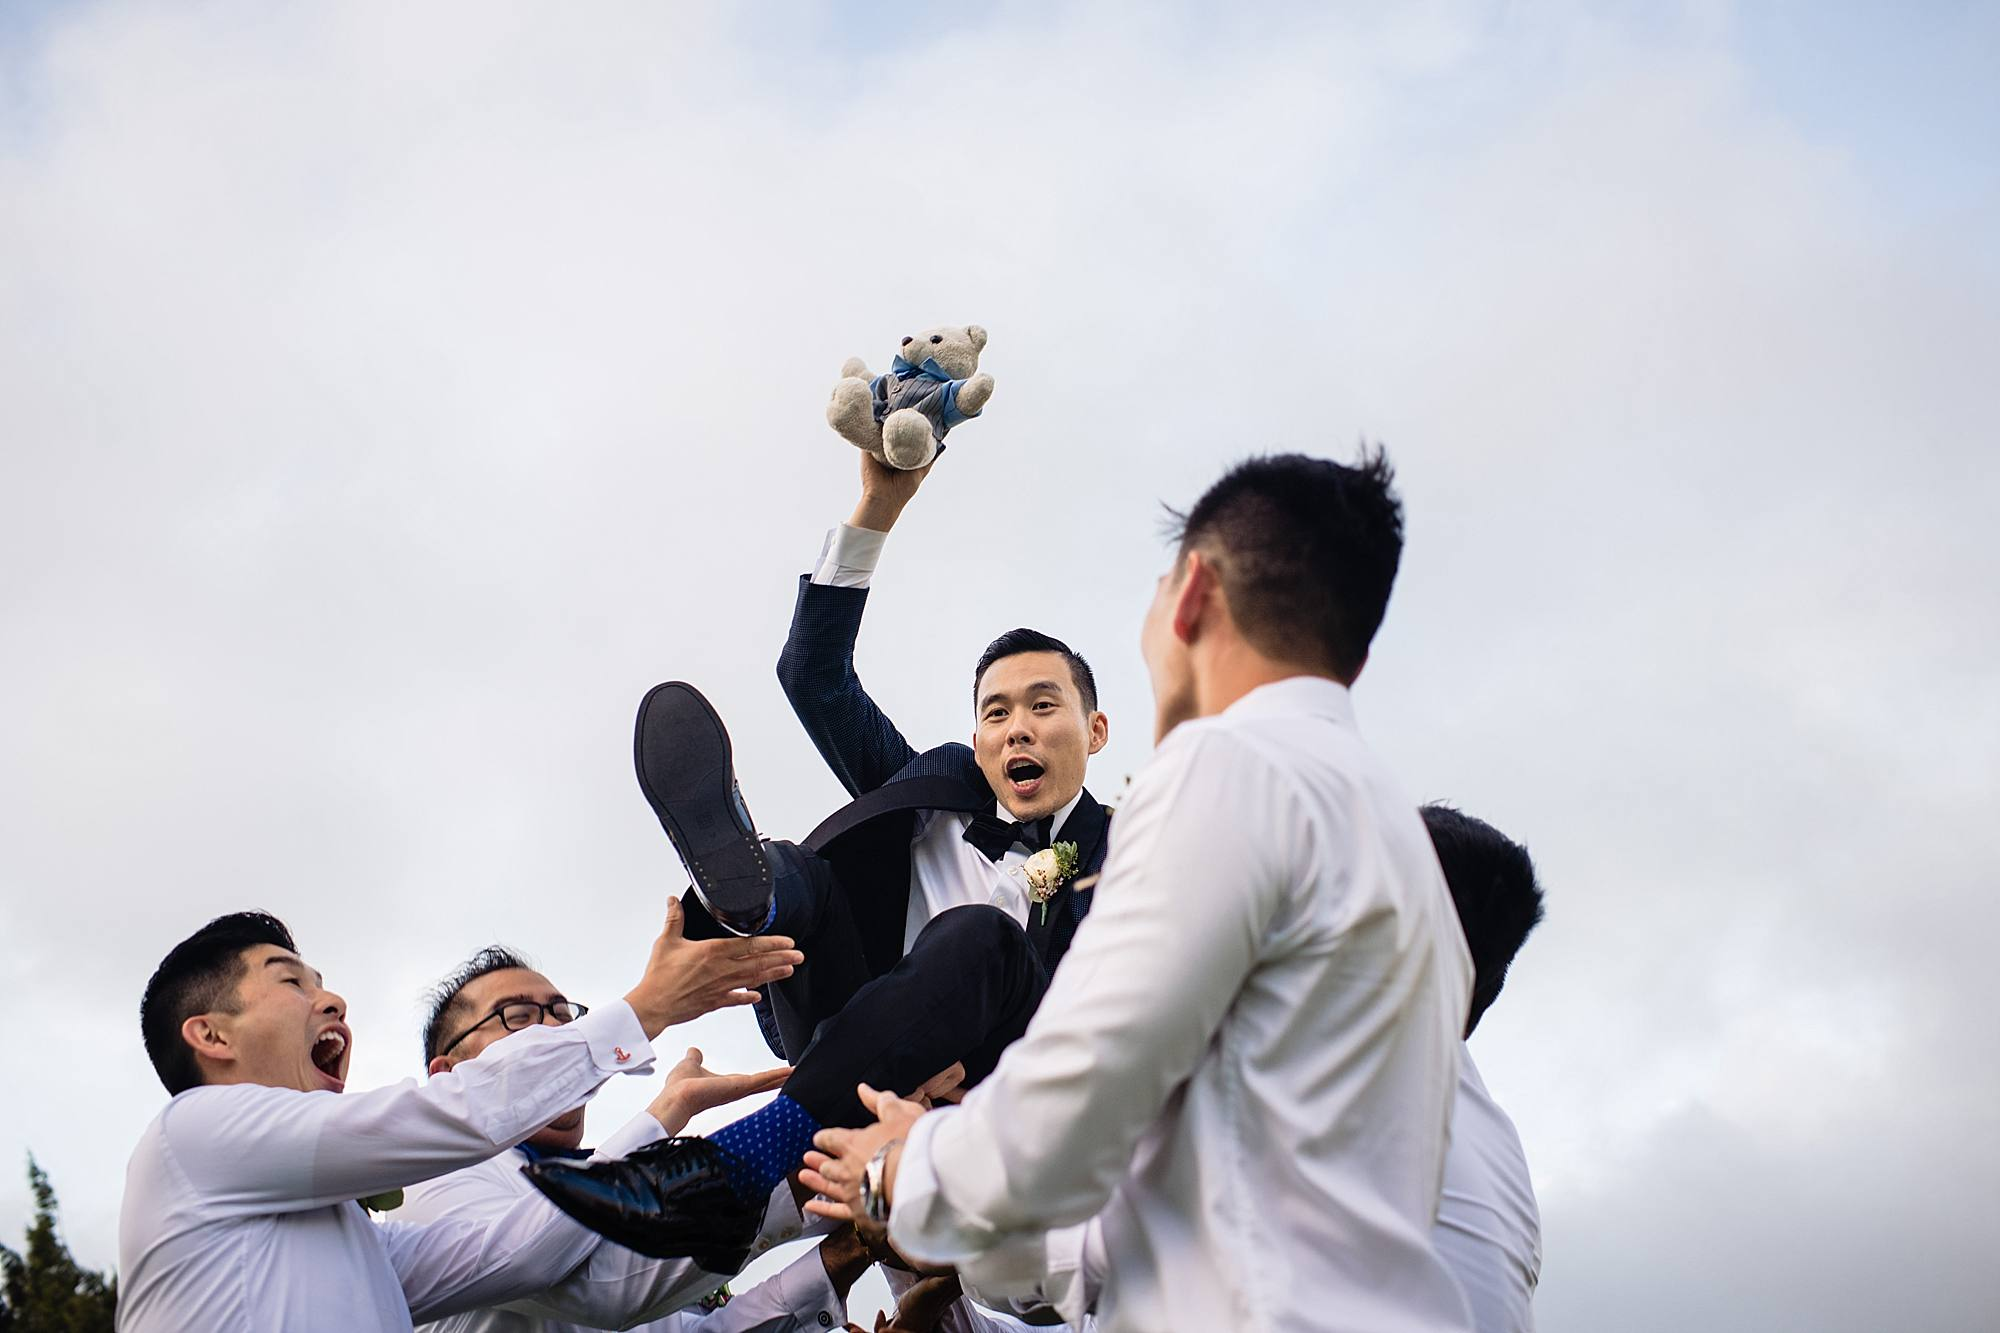 groom being thrown in the air